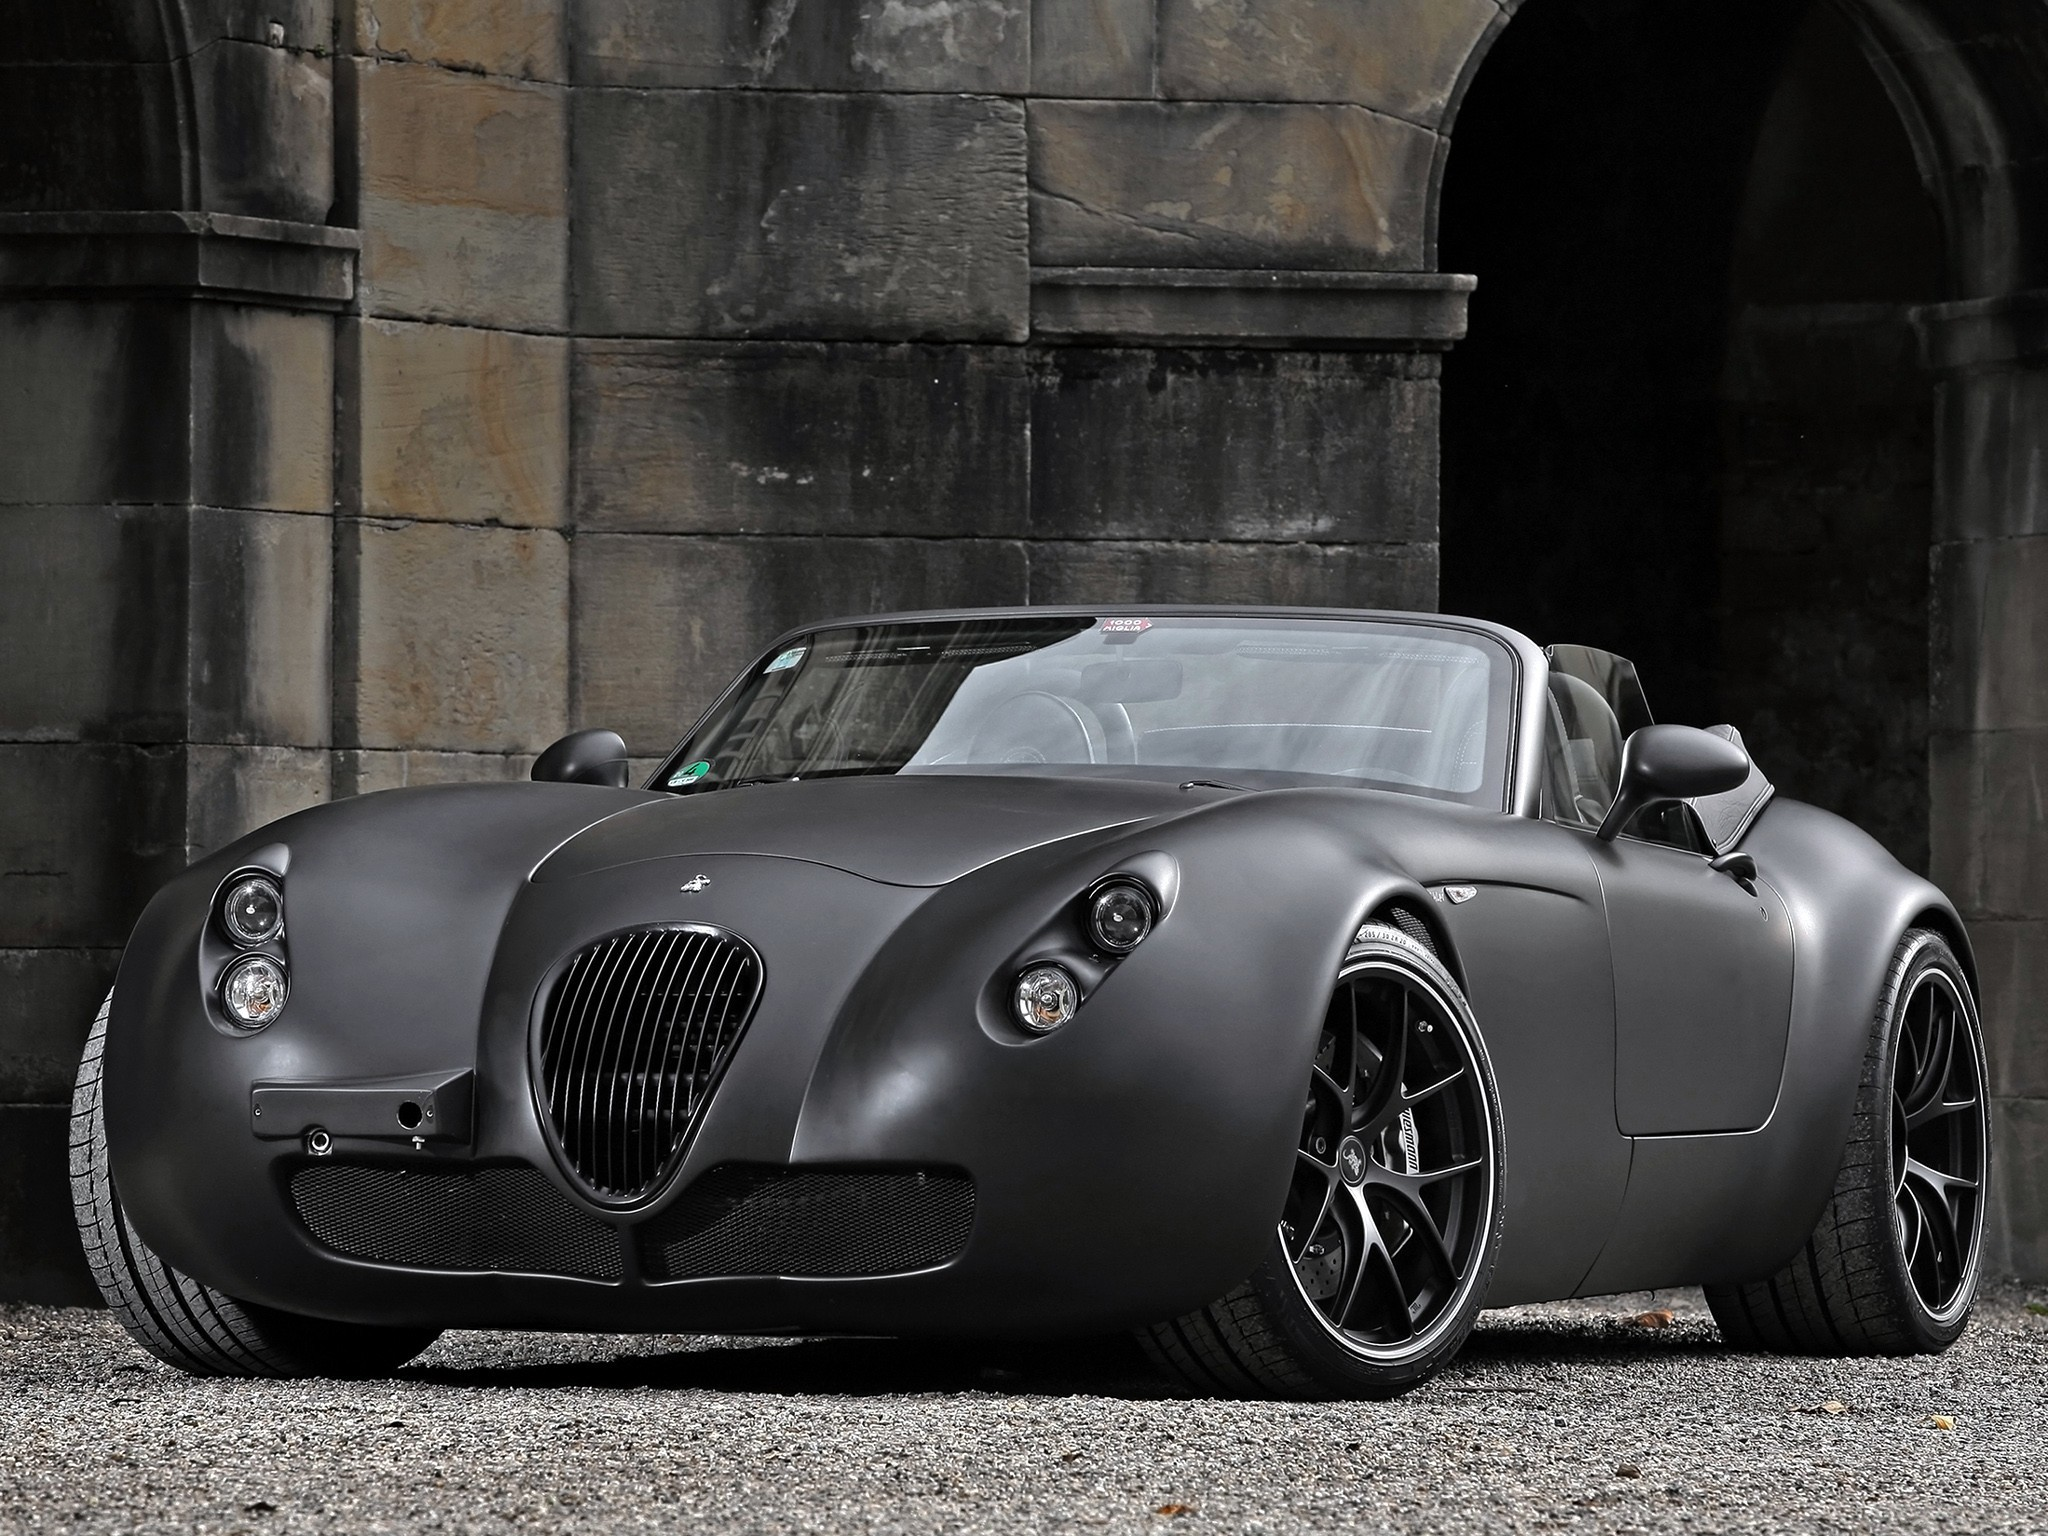 13 Wiesmann GT MF5 HD Wallpapers | Background Images - Wallpaper Abyss